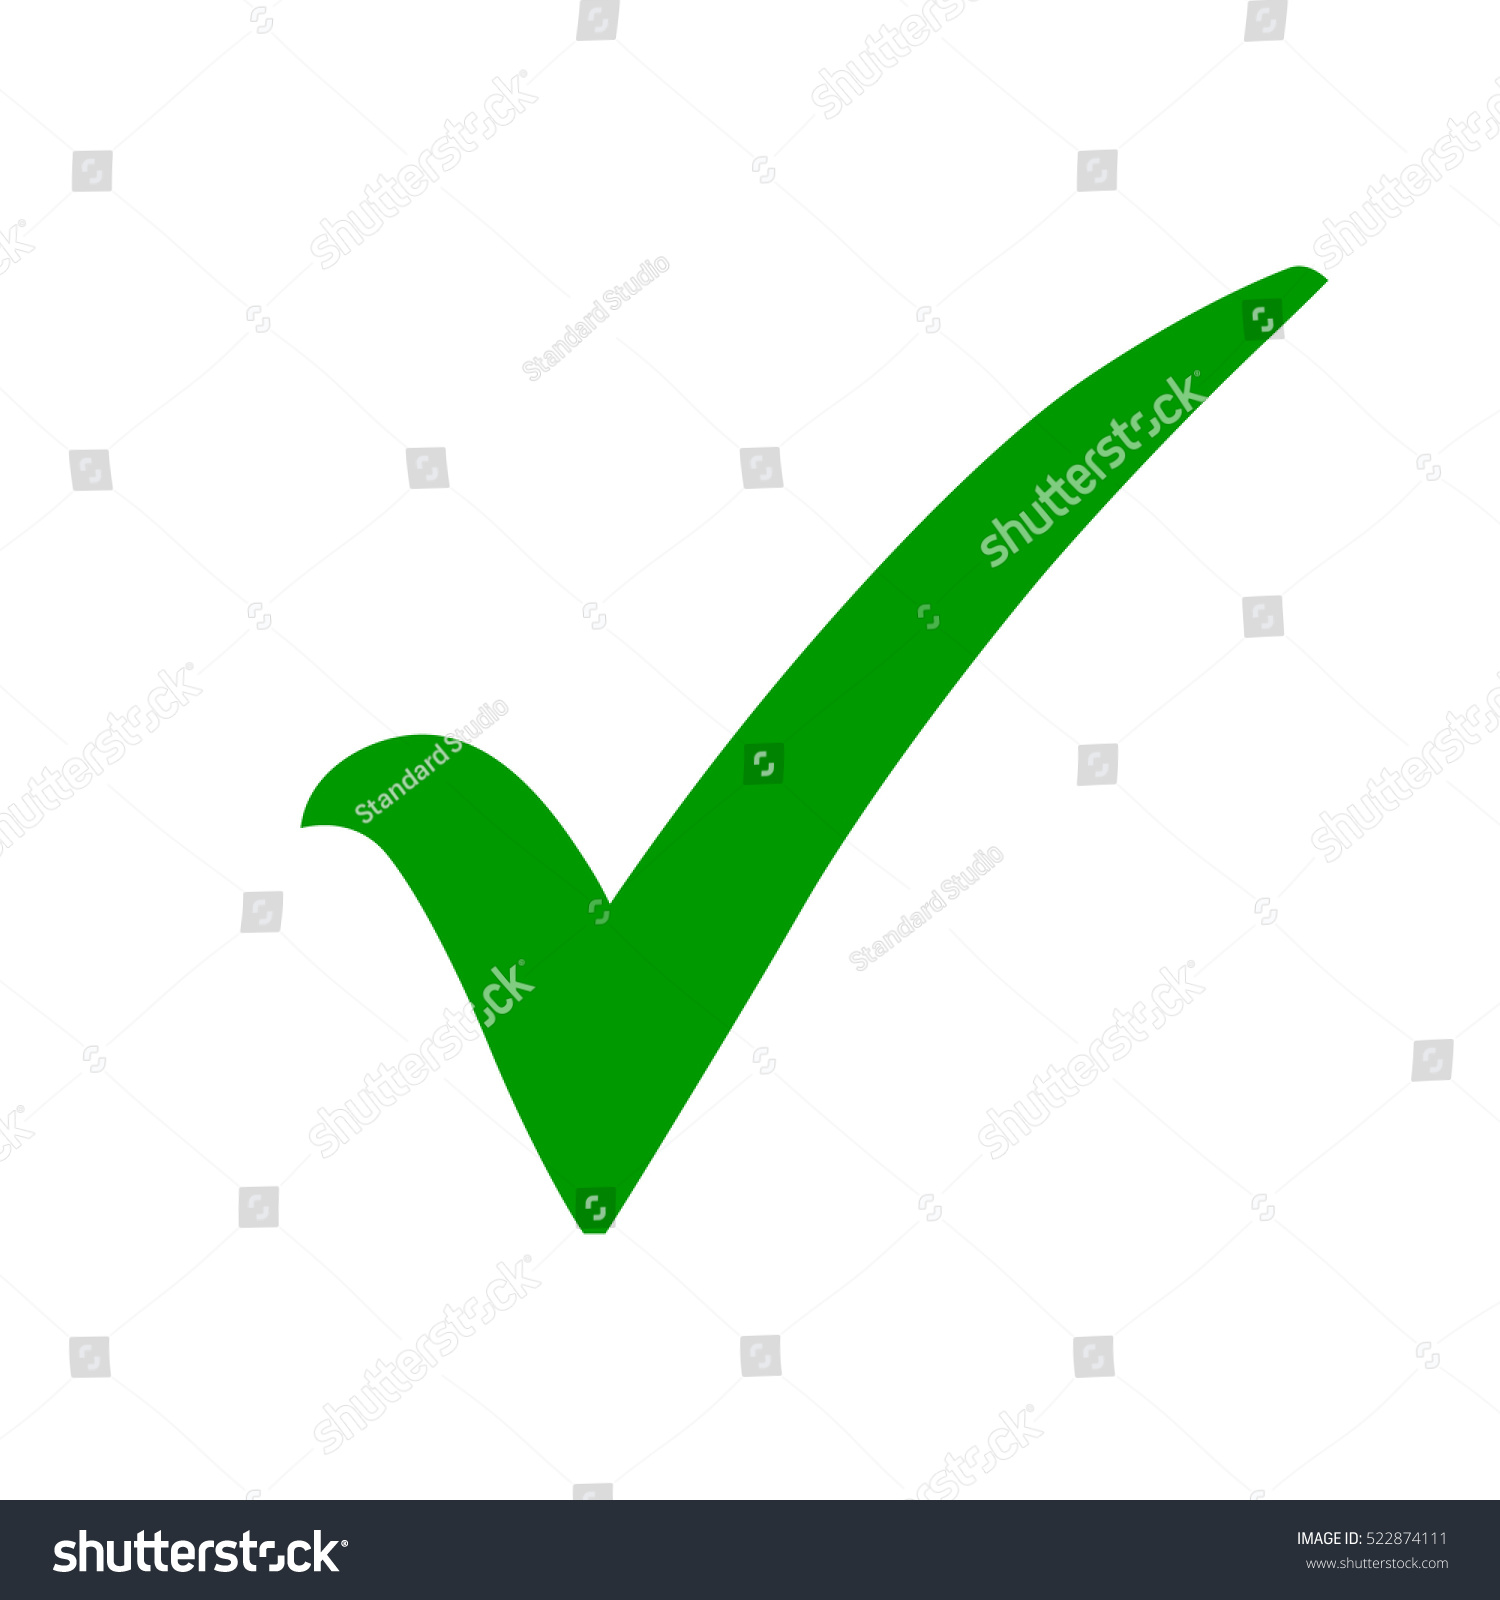 Symbol for right mark images symbol and sign ideas green check mark icon tick symbol stock vector 522874111 shutterstock green check mark icon tick symbol biocorpaavc Image collections